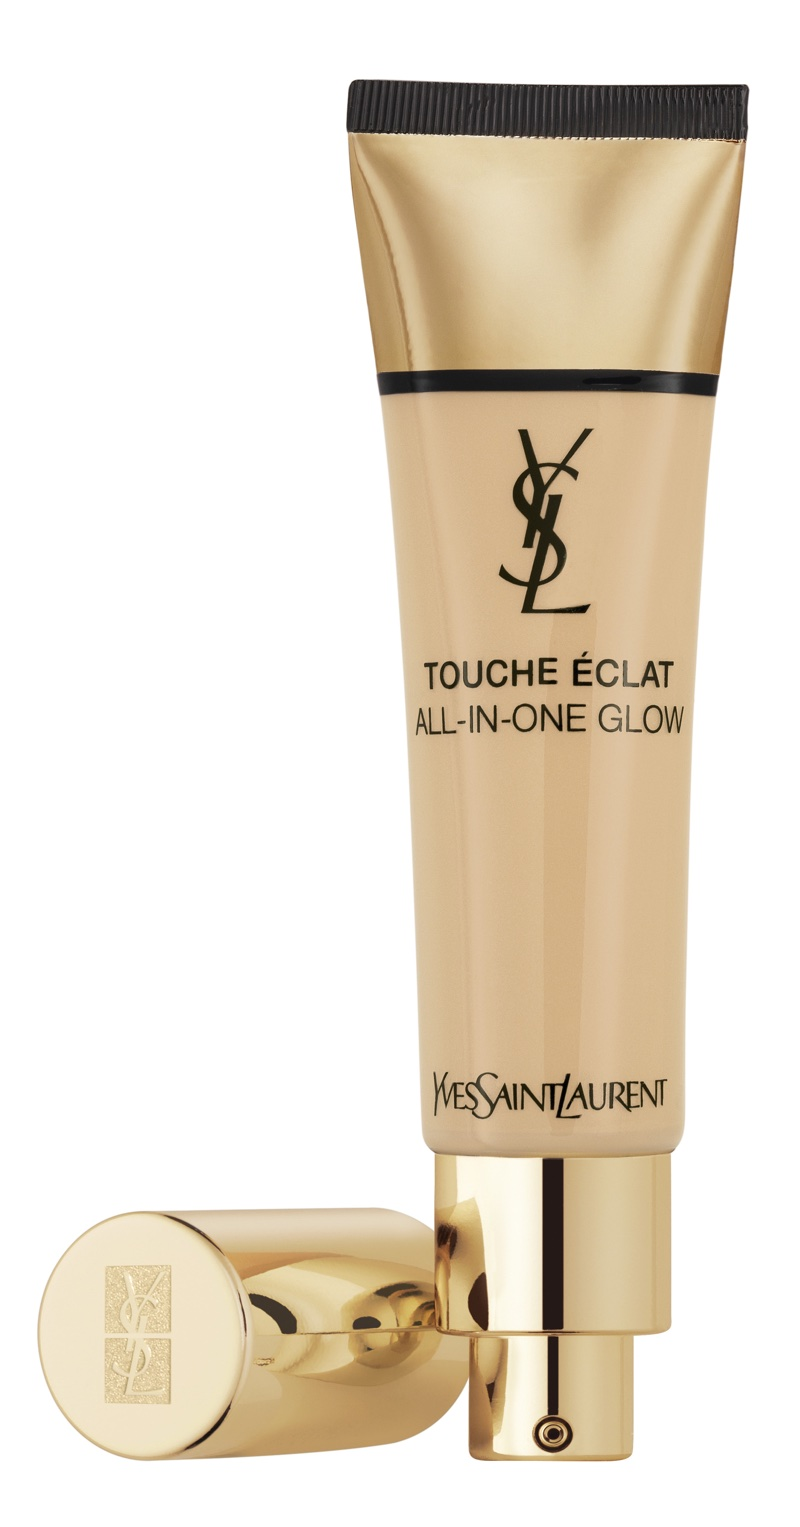 YSL Introduces Two New Products to  Touch Éclat Line